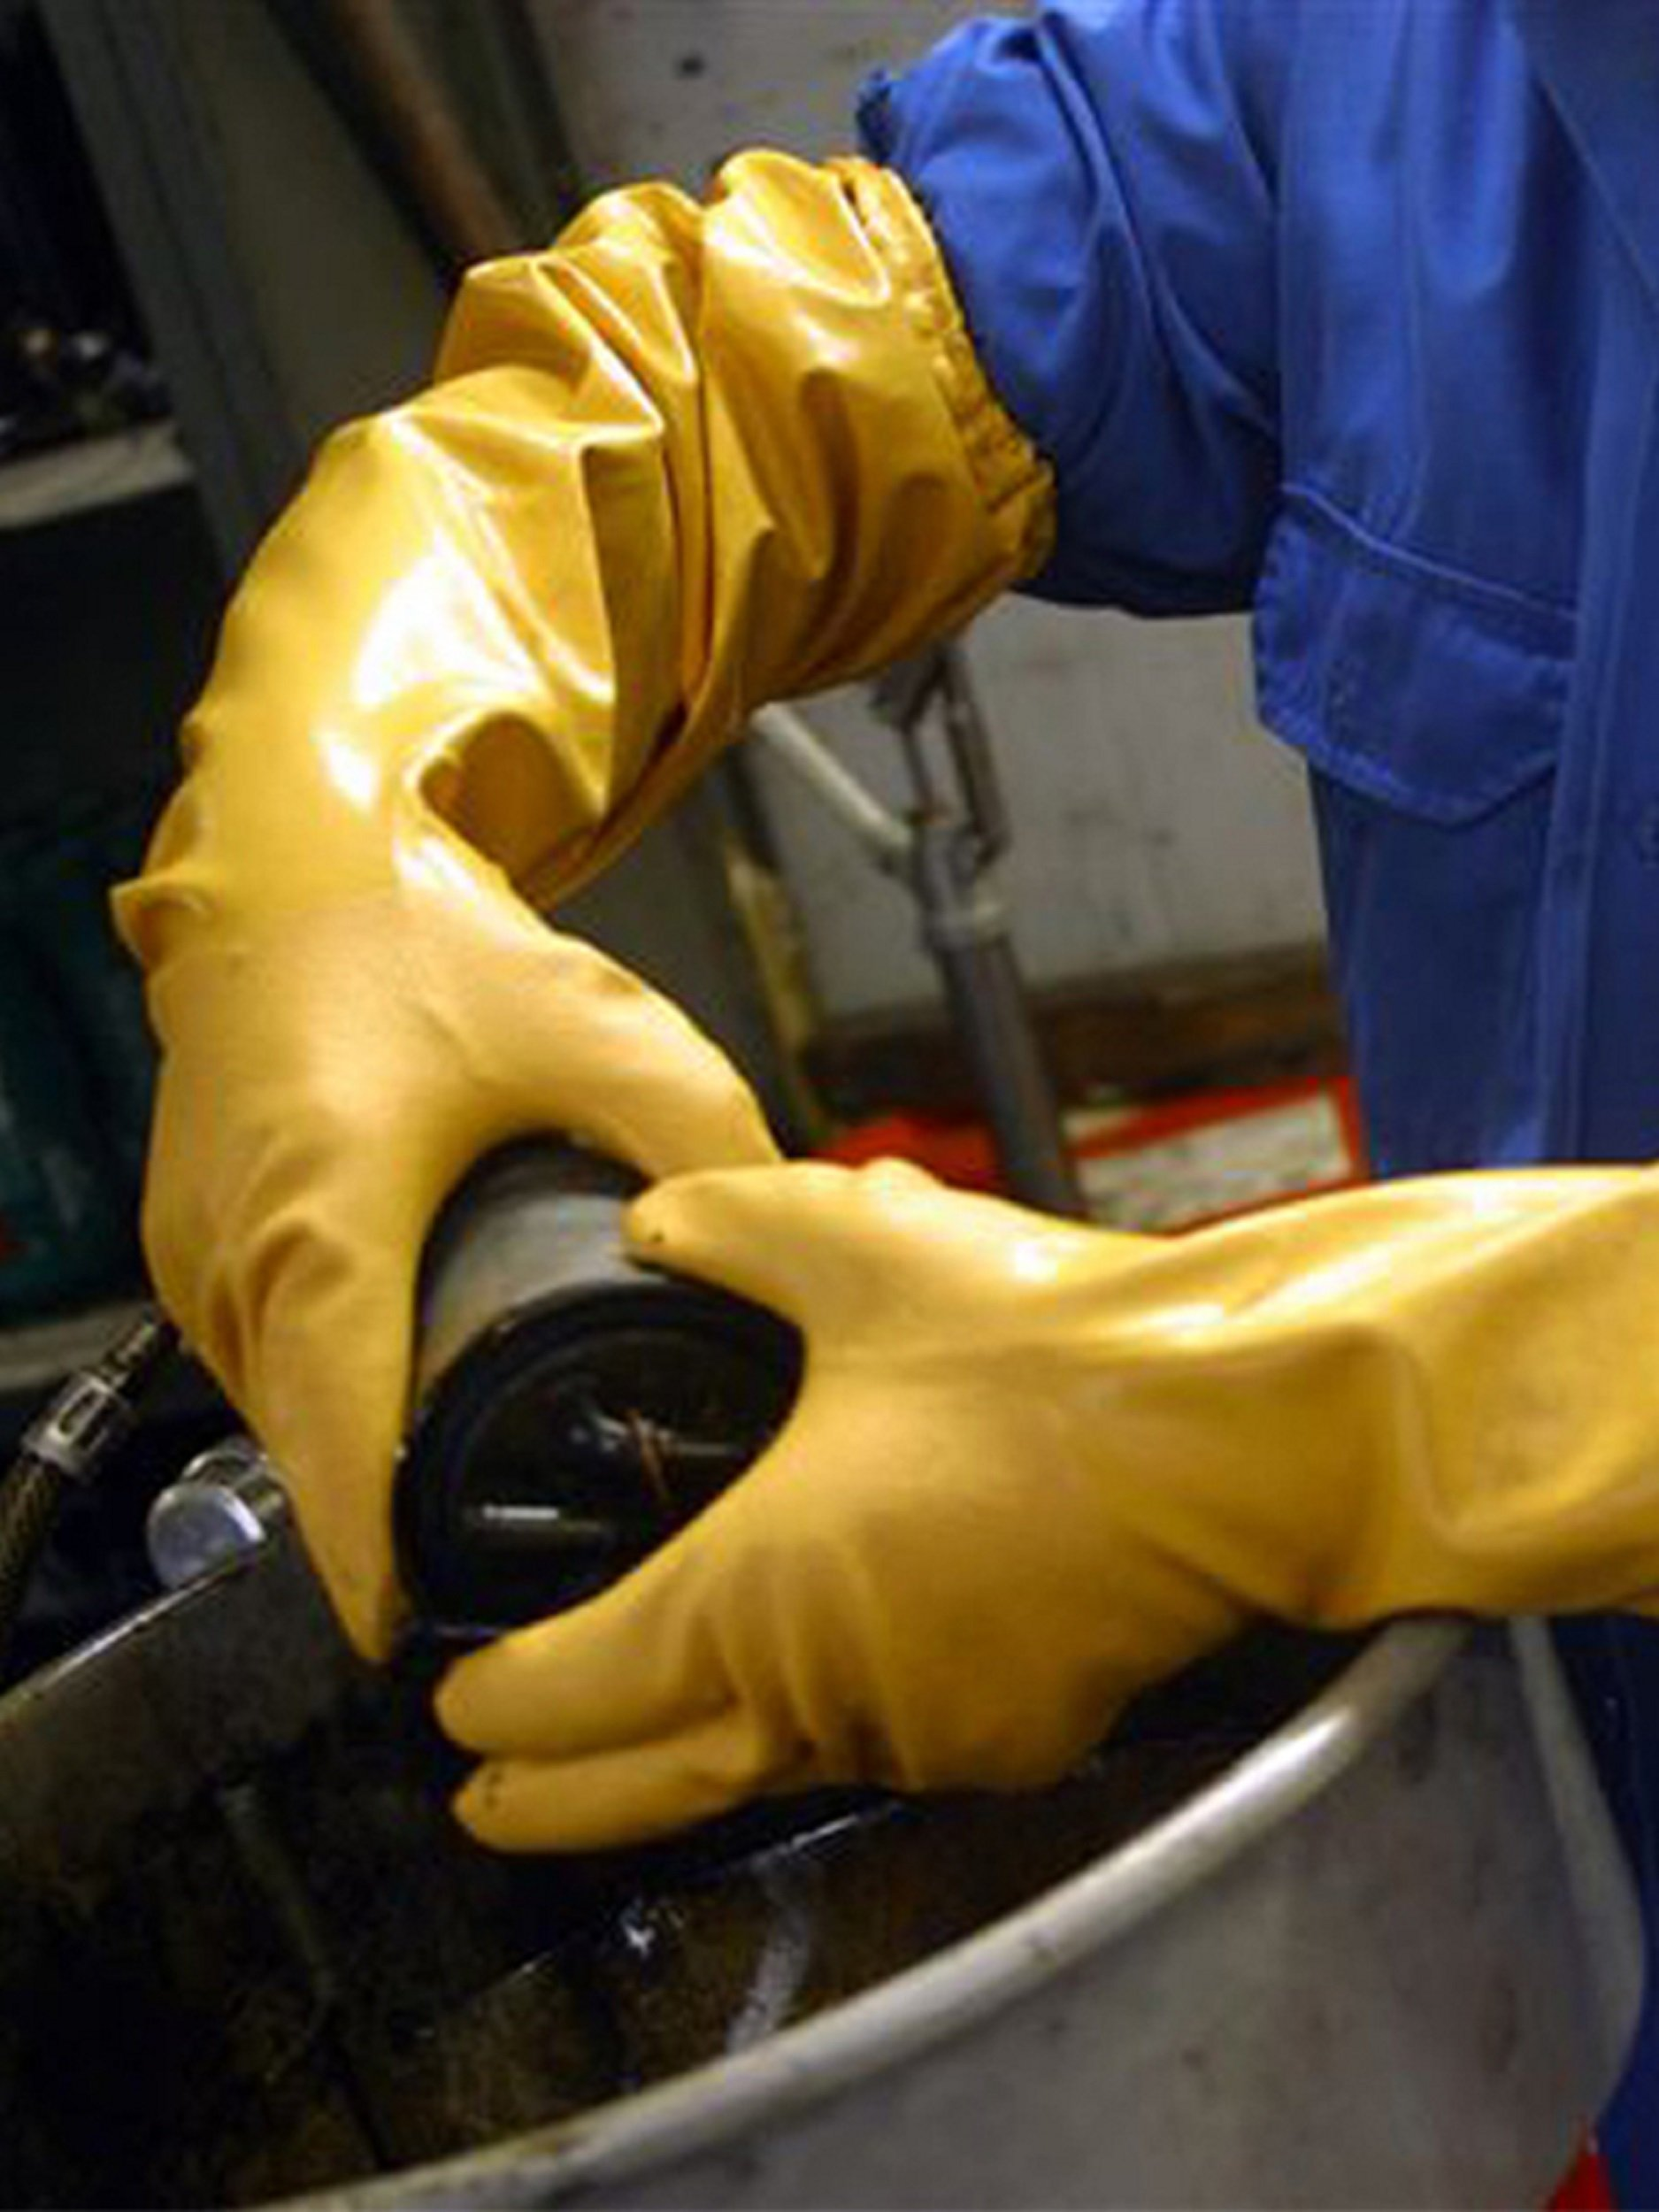 (2 Pair) Showa Atlas 772 Nitrile Elbow Length Chemical Resistant Gloves, 26'', Yellow (Extra Large) by Atlas (Image #4)